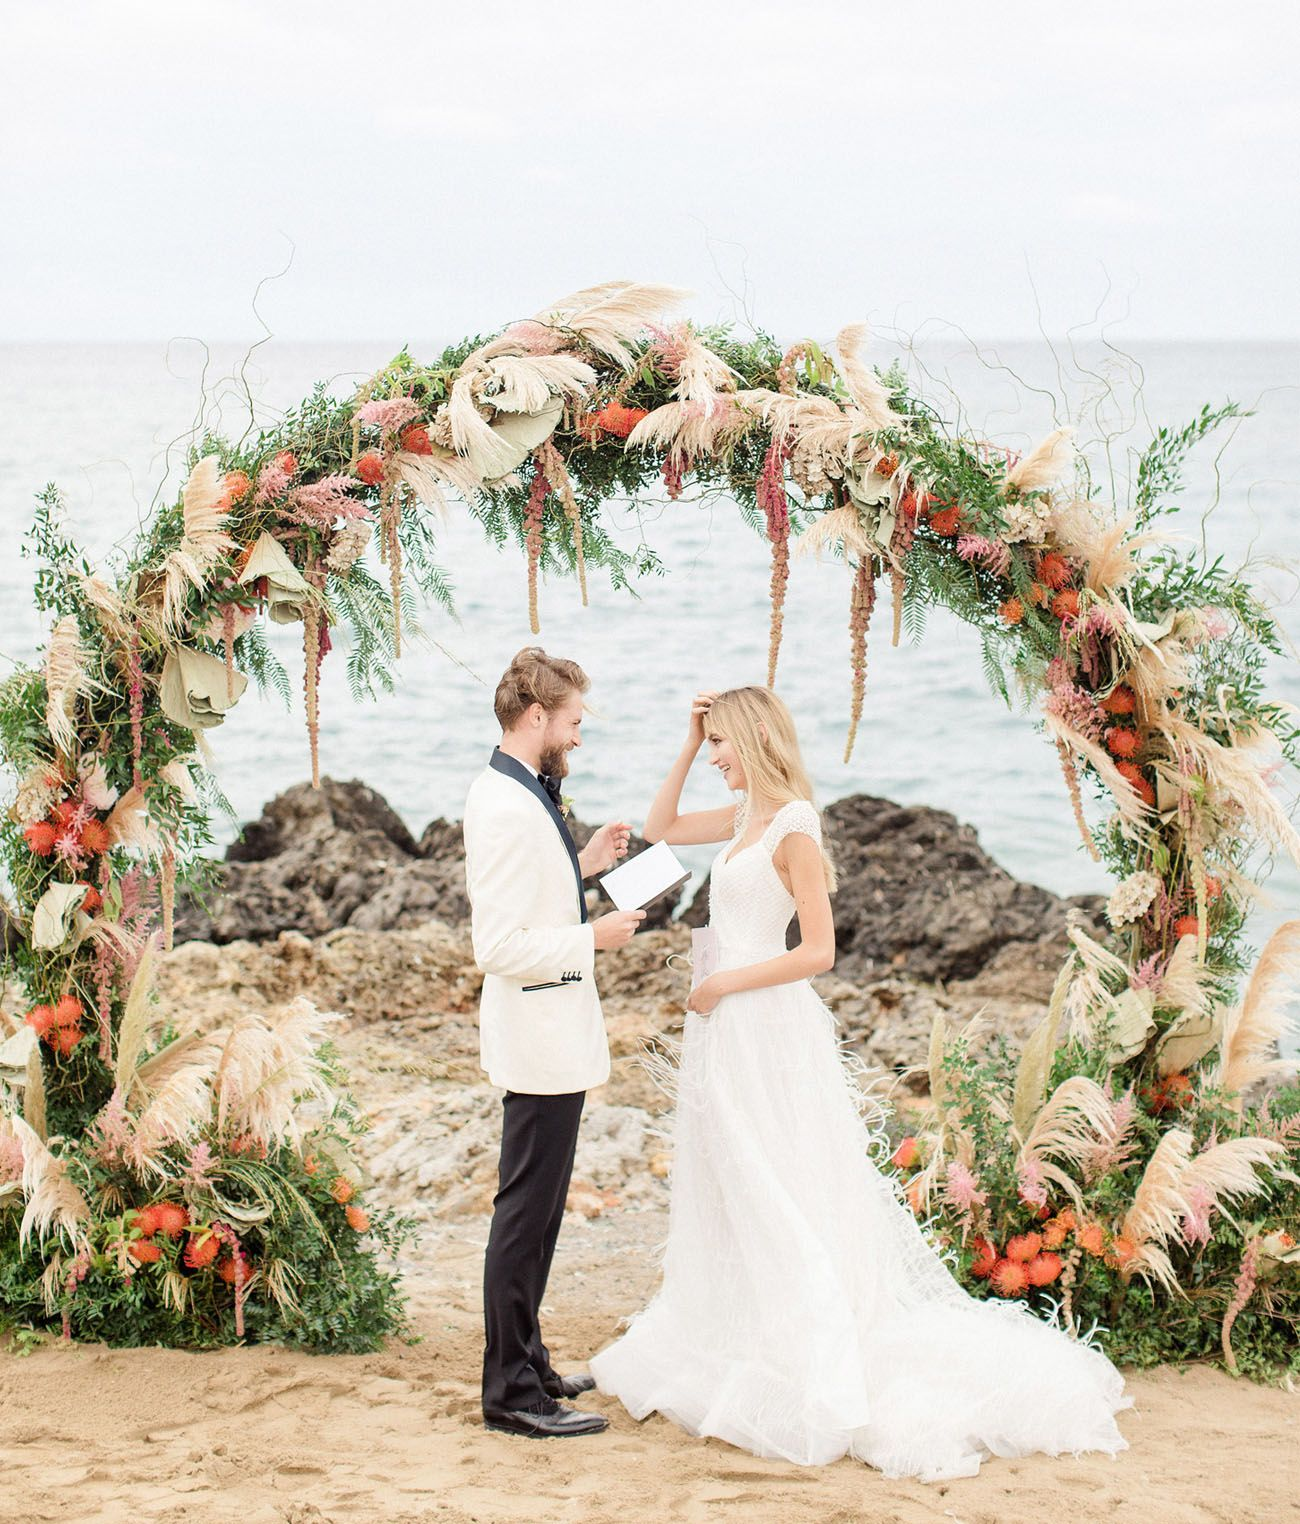 Belongil Beach Wedding Ceremony: This Elegant Beach Wedding Captures Crete's Undeniable